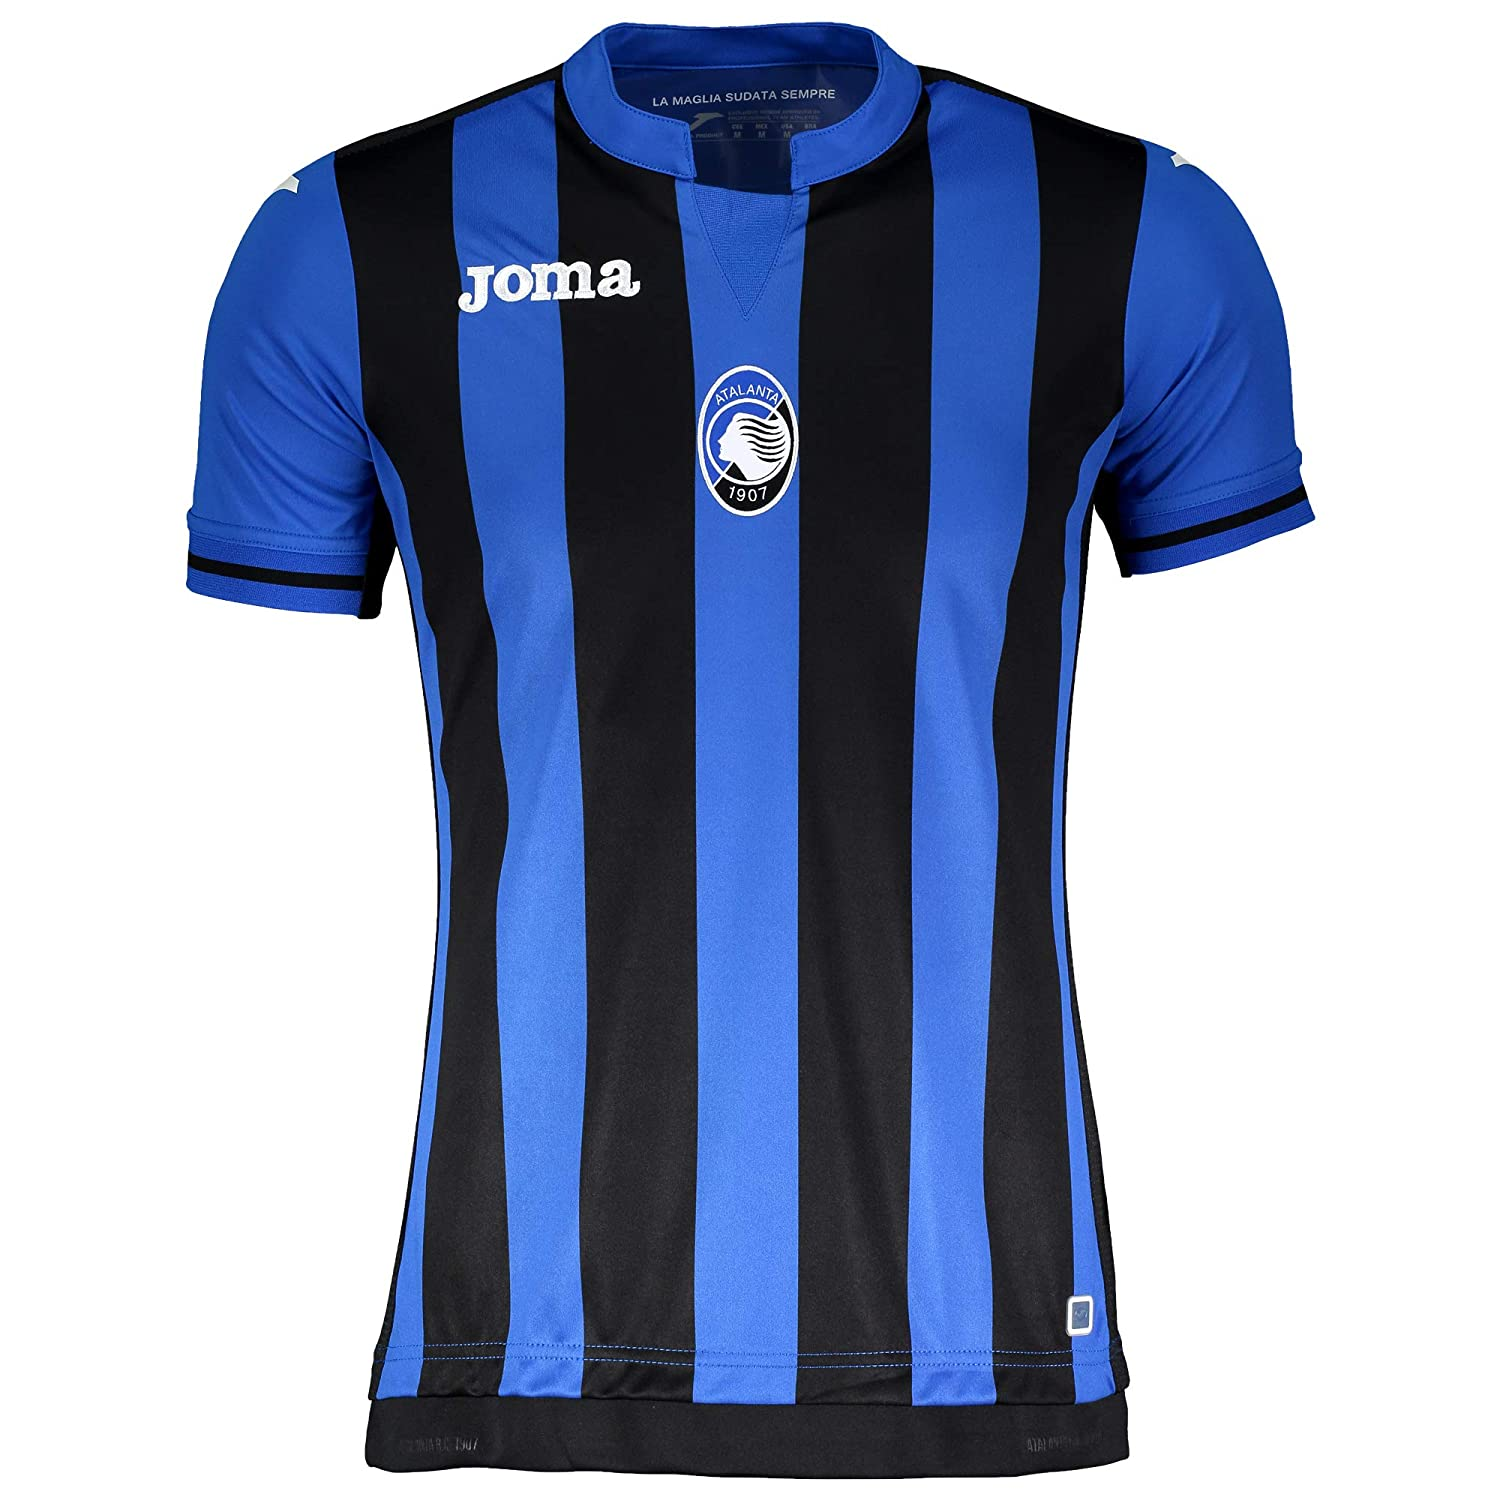 Amazon.com : Joma Atalanta BC 2018/2019 1st and 2nd Jersey : Sports & Outdoors